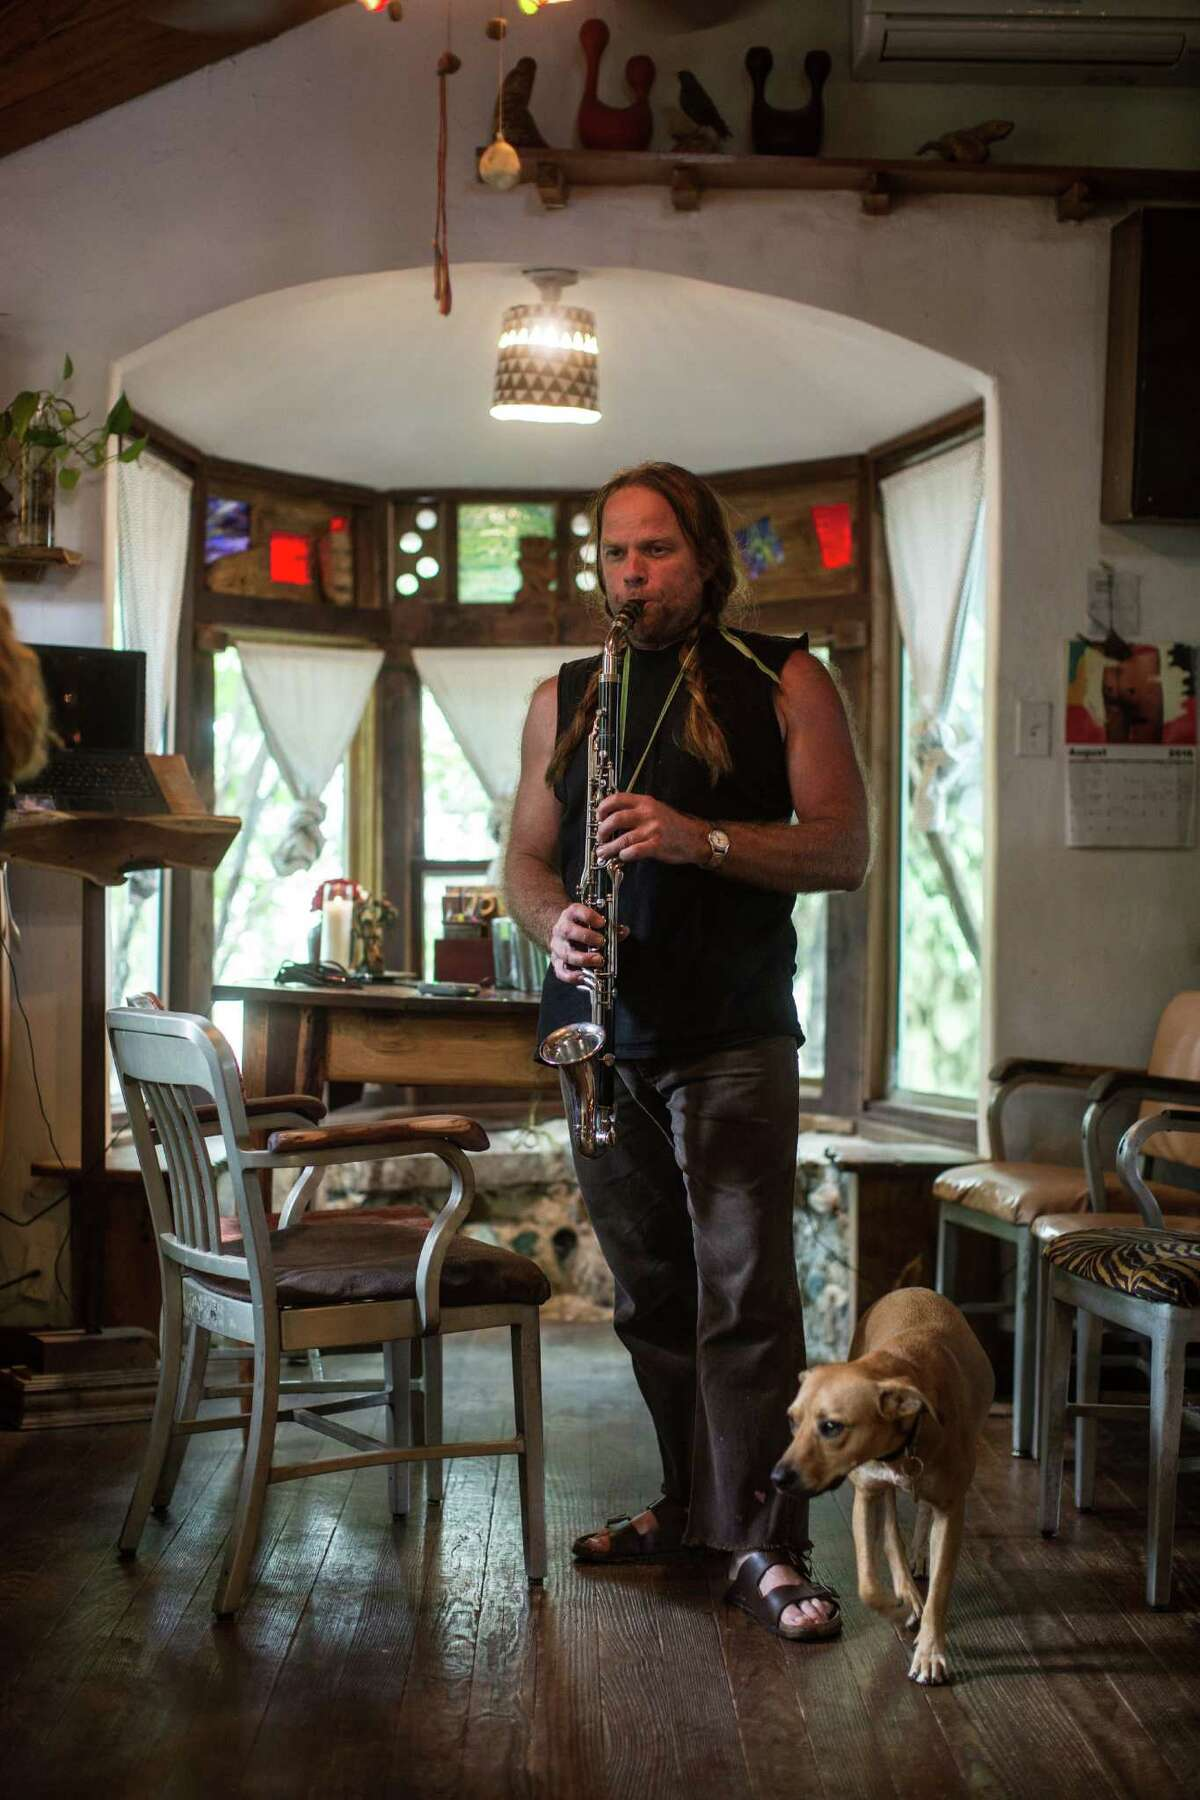 Thor Harris, multi-instrumentalist and artist, plays an alto clarinet in the living room of his home in Austin, Texas. Harris' new band,